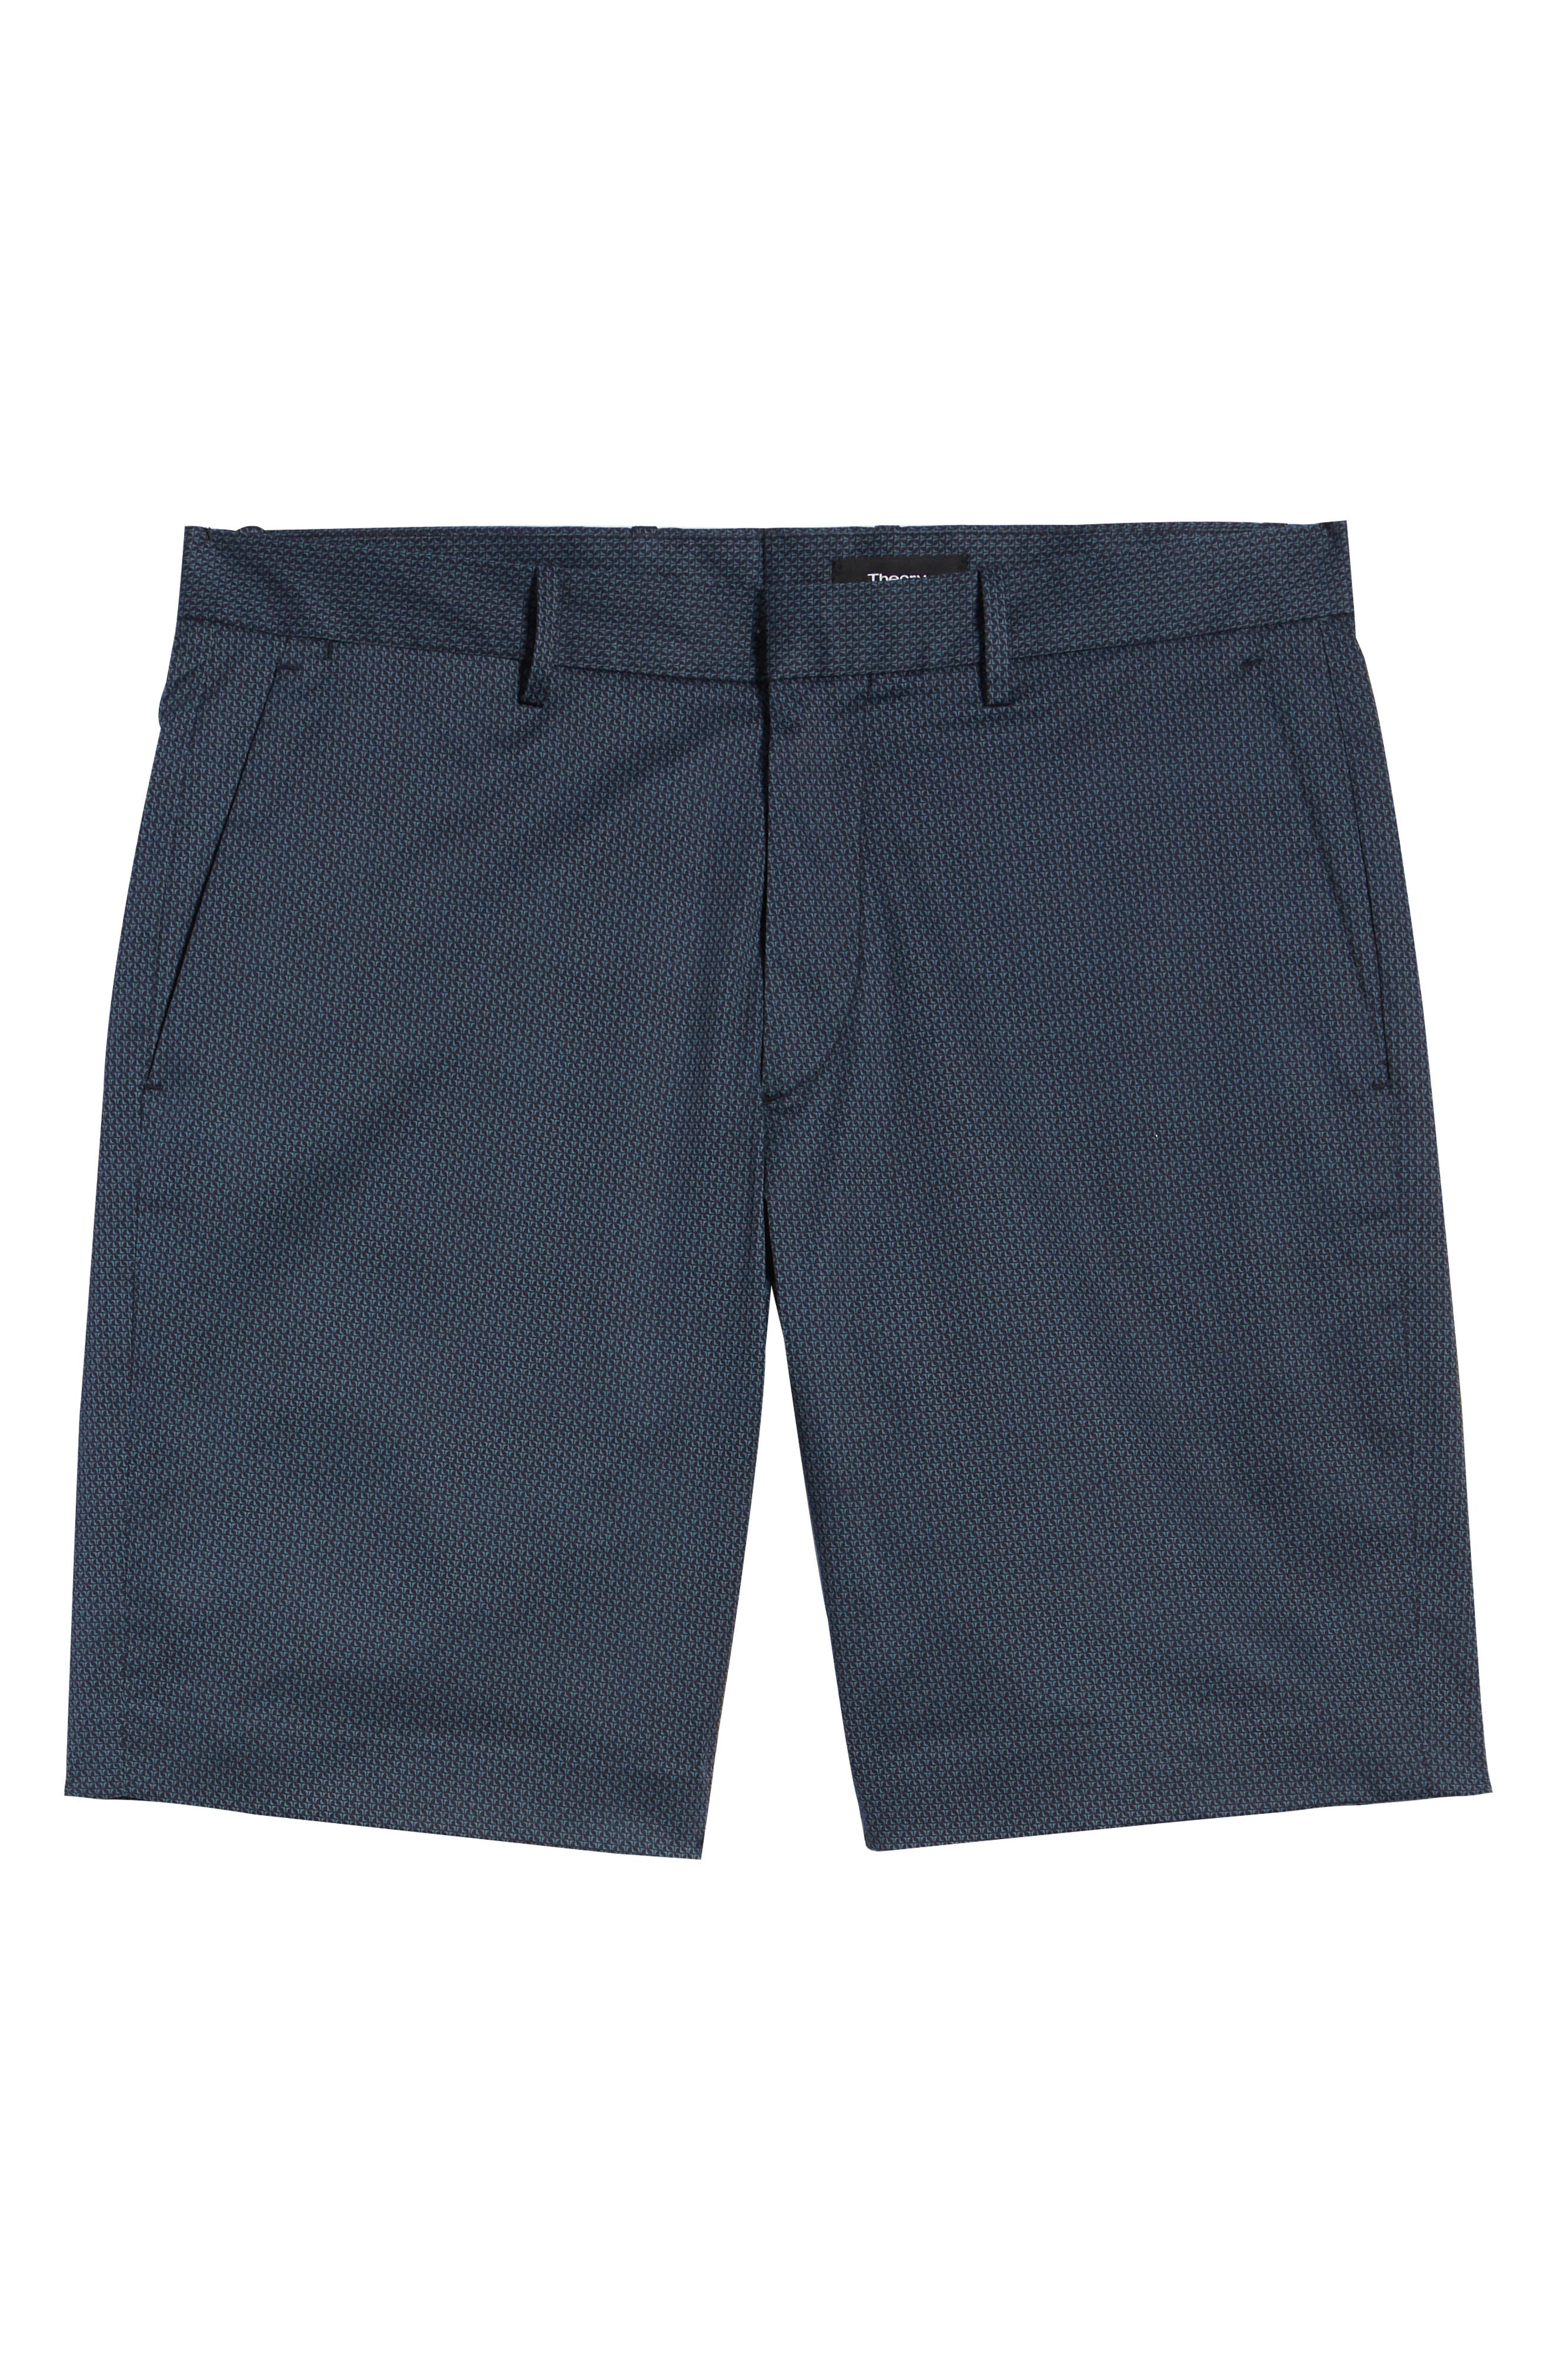 Zaine Stretch Cotton Shorts,                             Alternate thumbnail 6, color,                             400